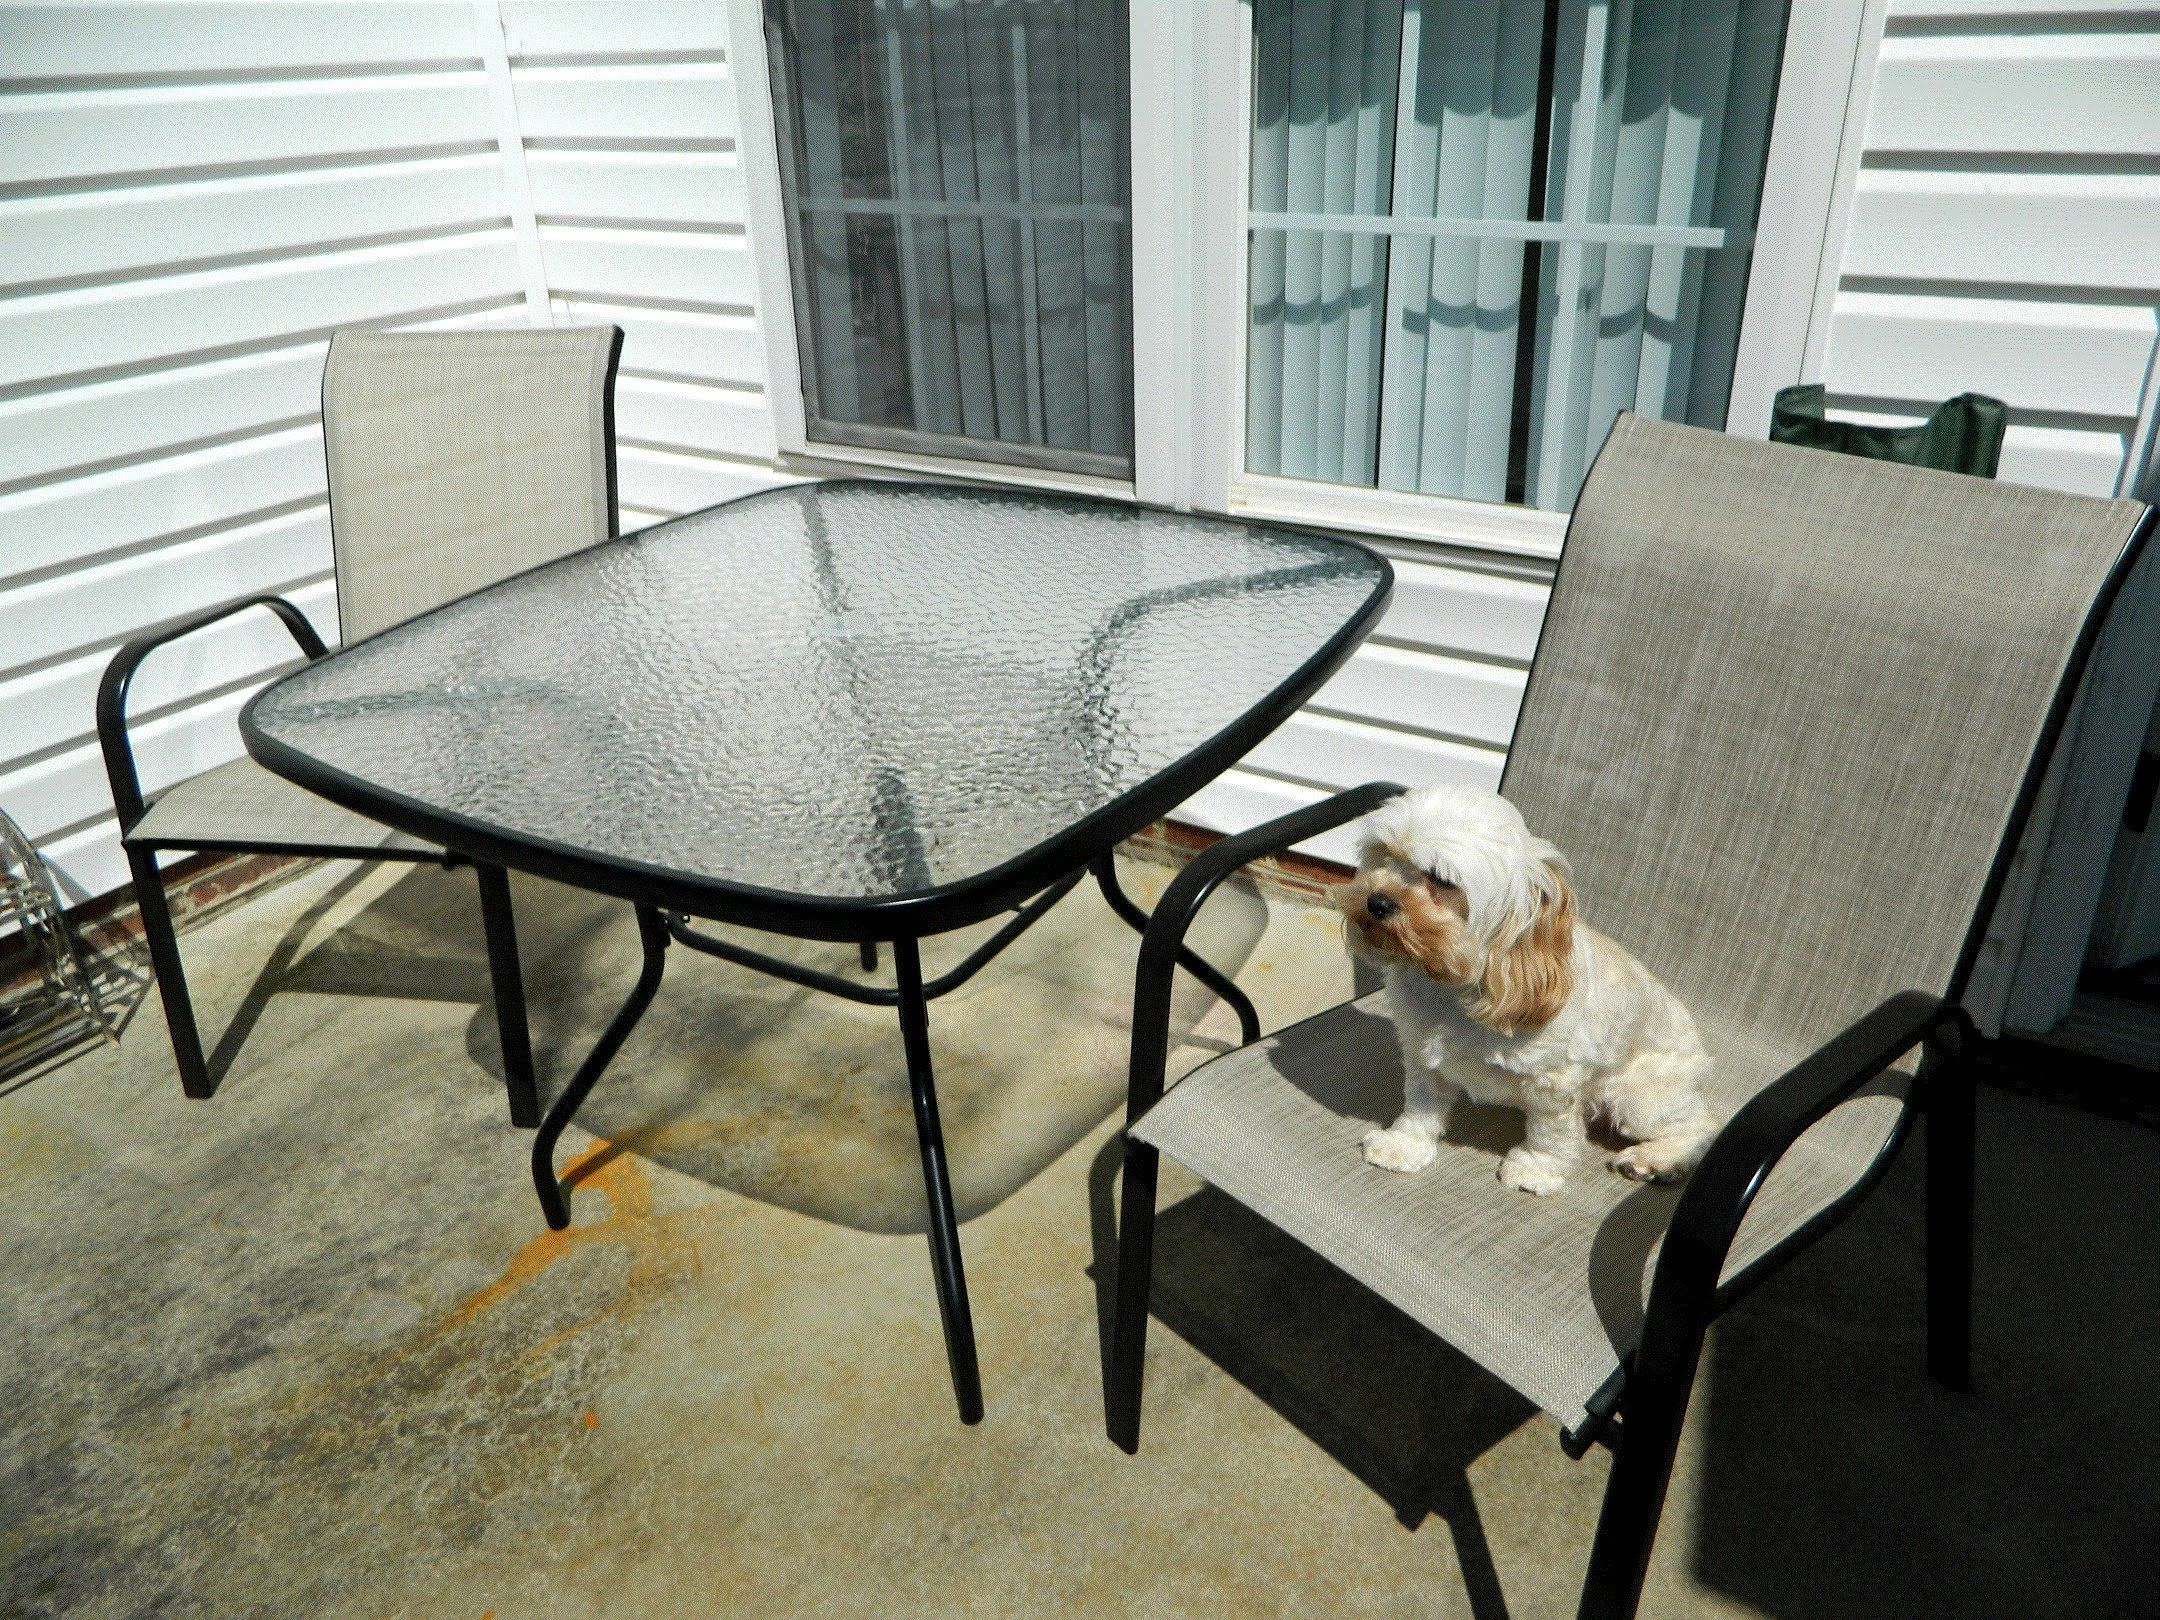 Patio Furniture At Cvs Retail 109 97 Clearance Price 27 49